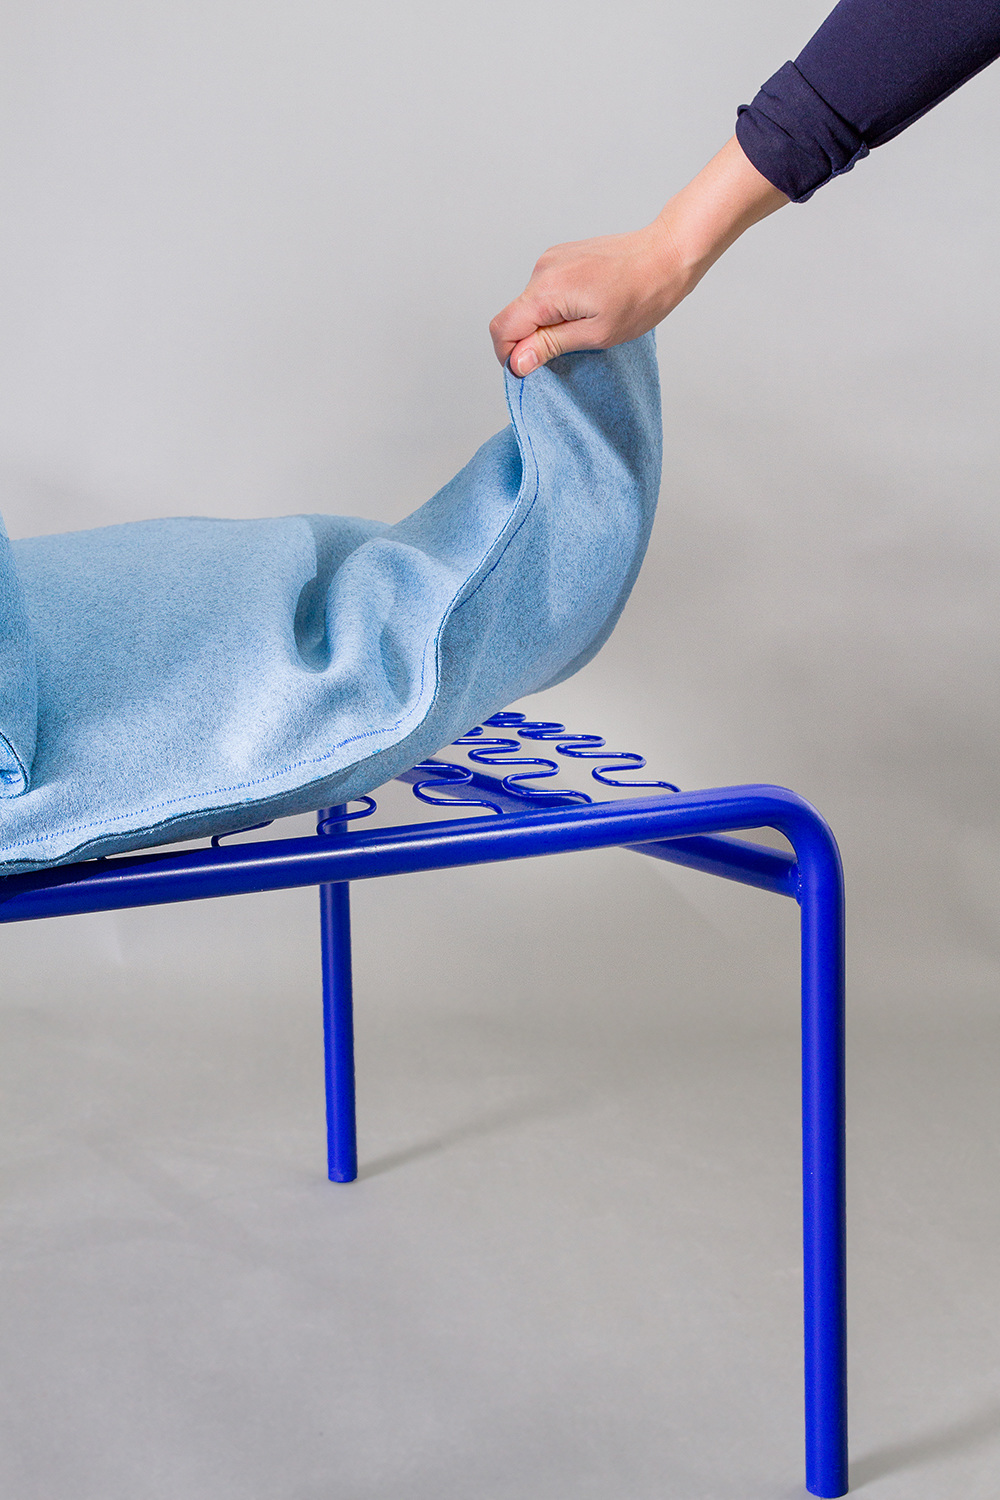 Camilla Figueroa's  Siksak  chair. Designed to offer the sitter numerous sitting positions.